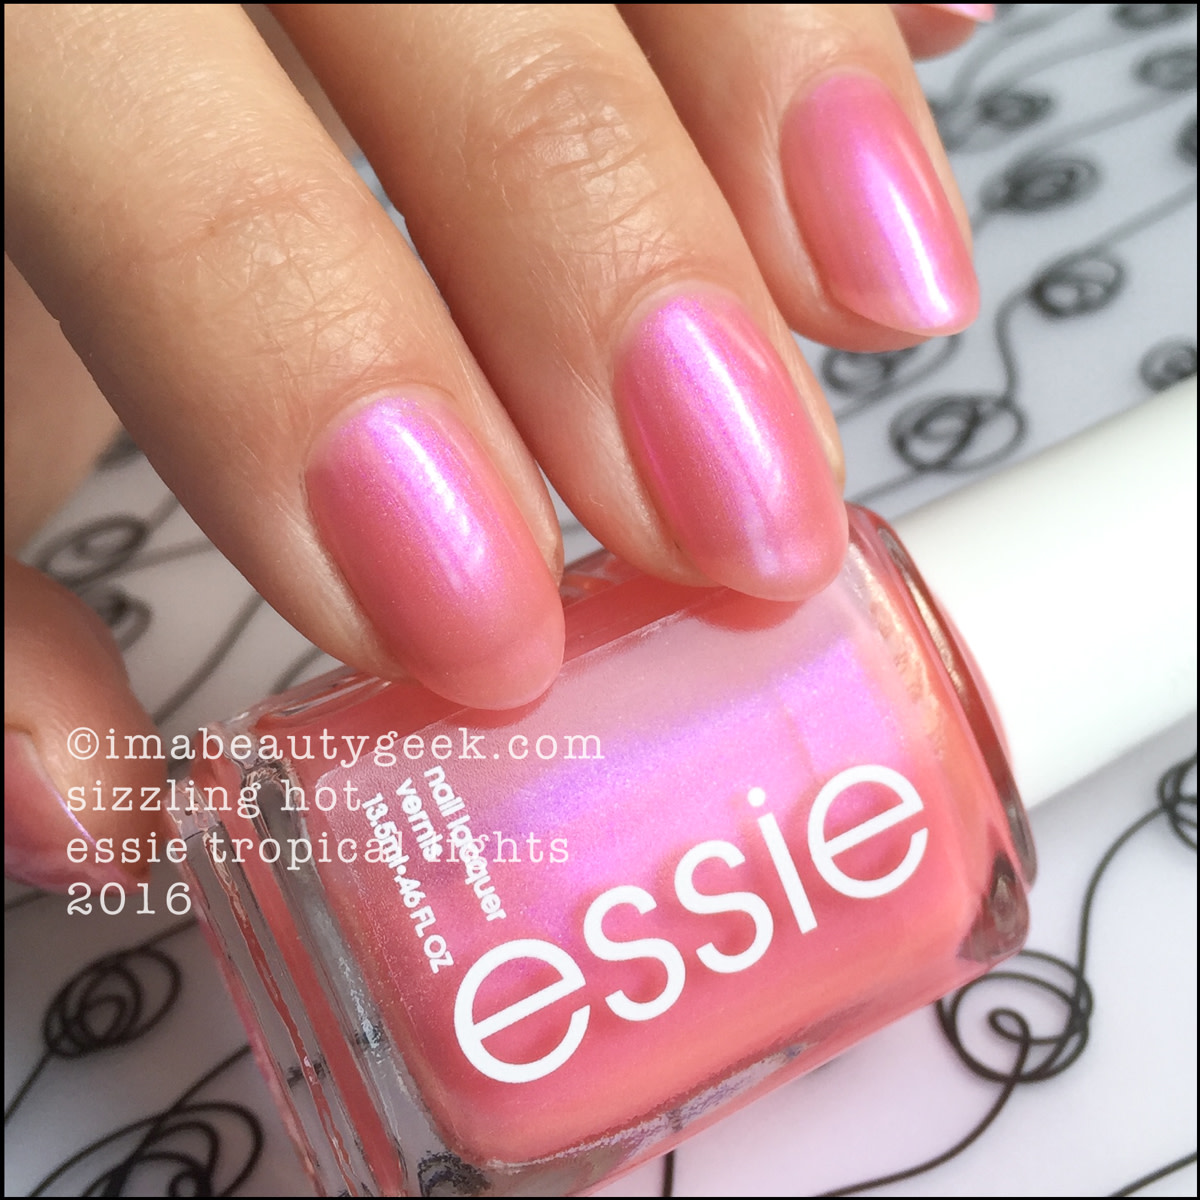 Essie Sizzling Hot_Essie Tropical Lights Collection 2016